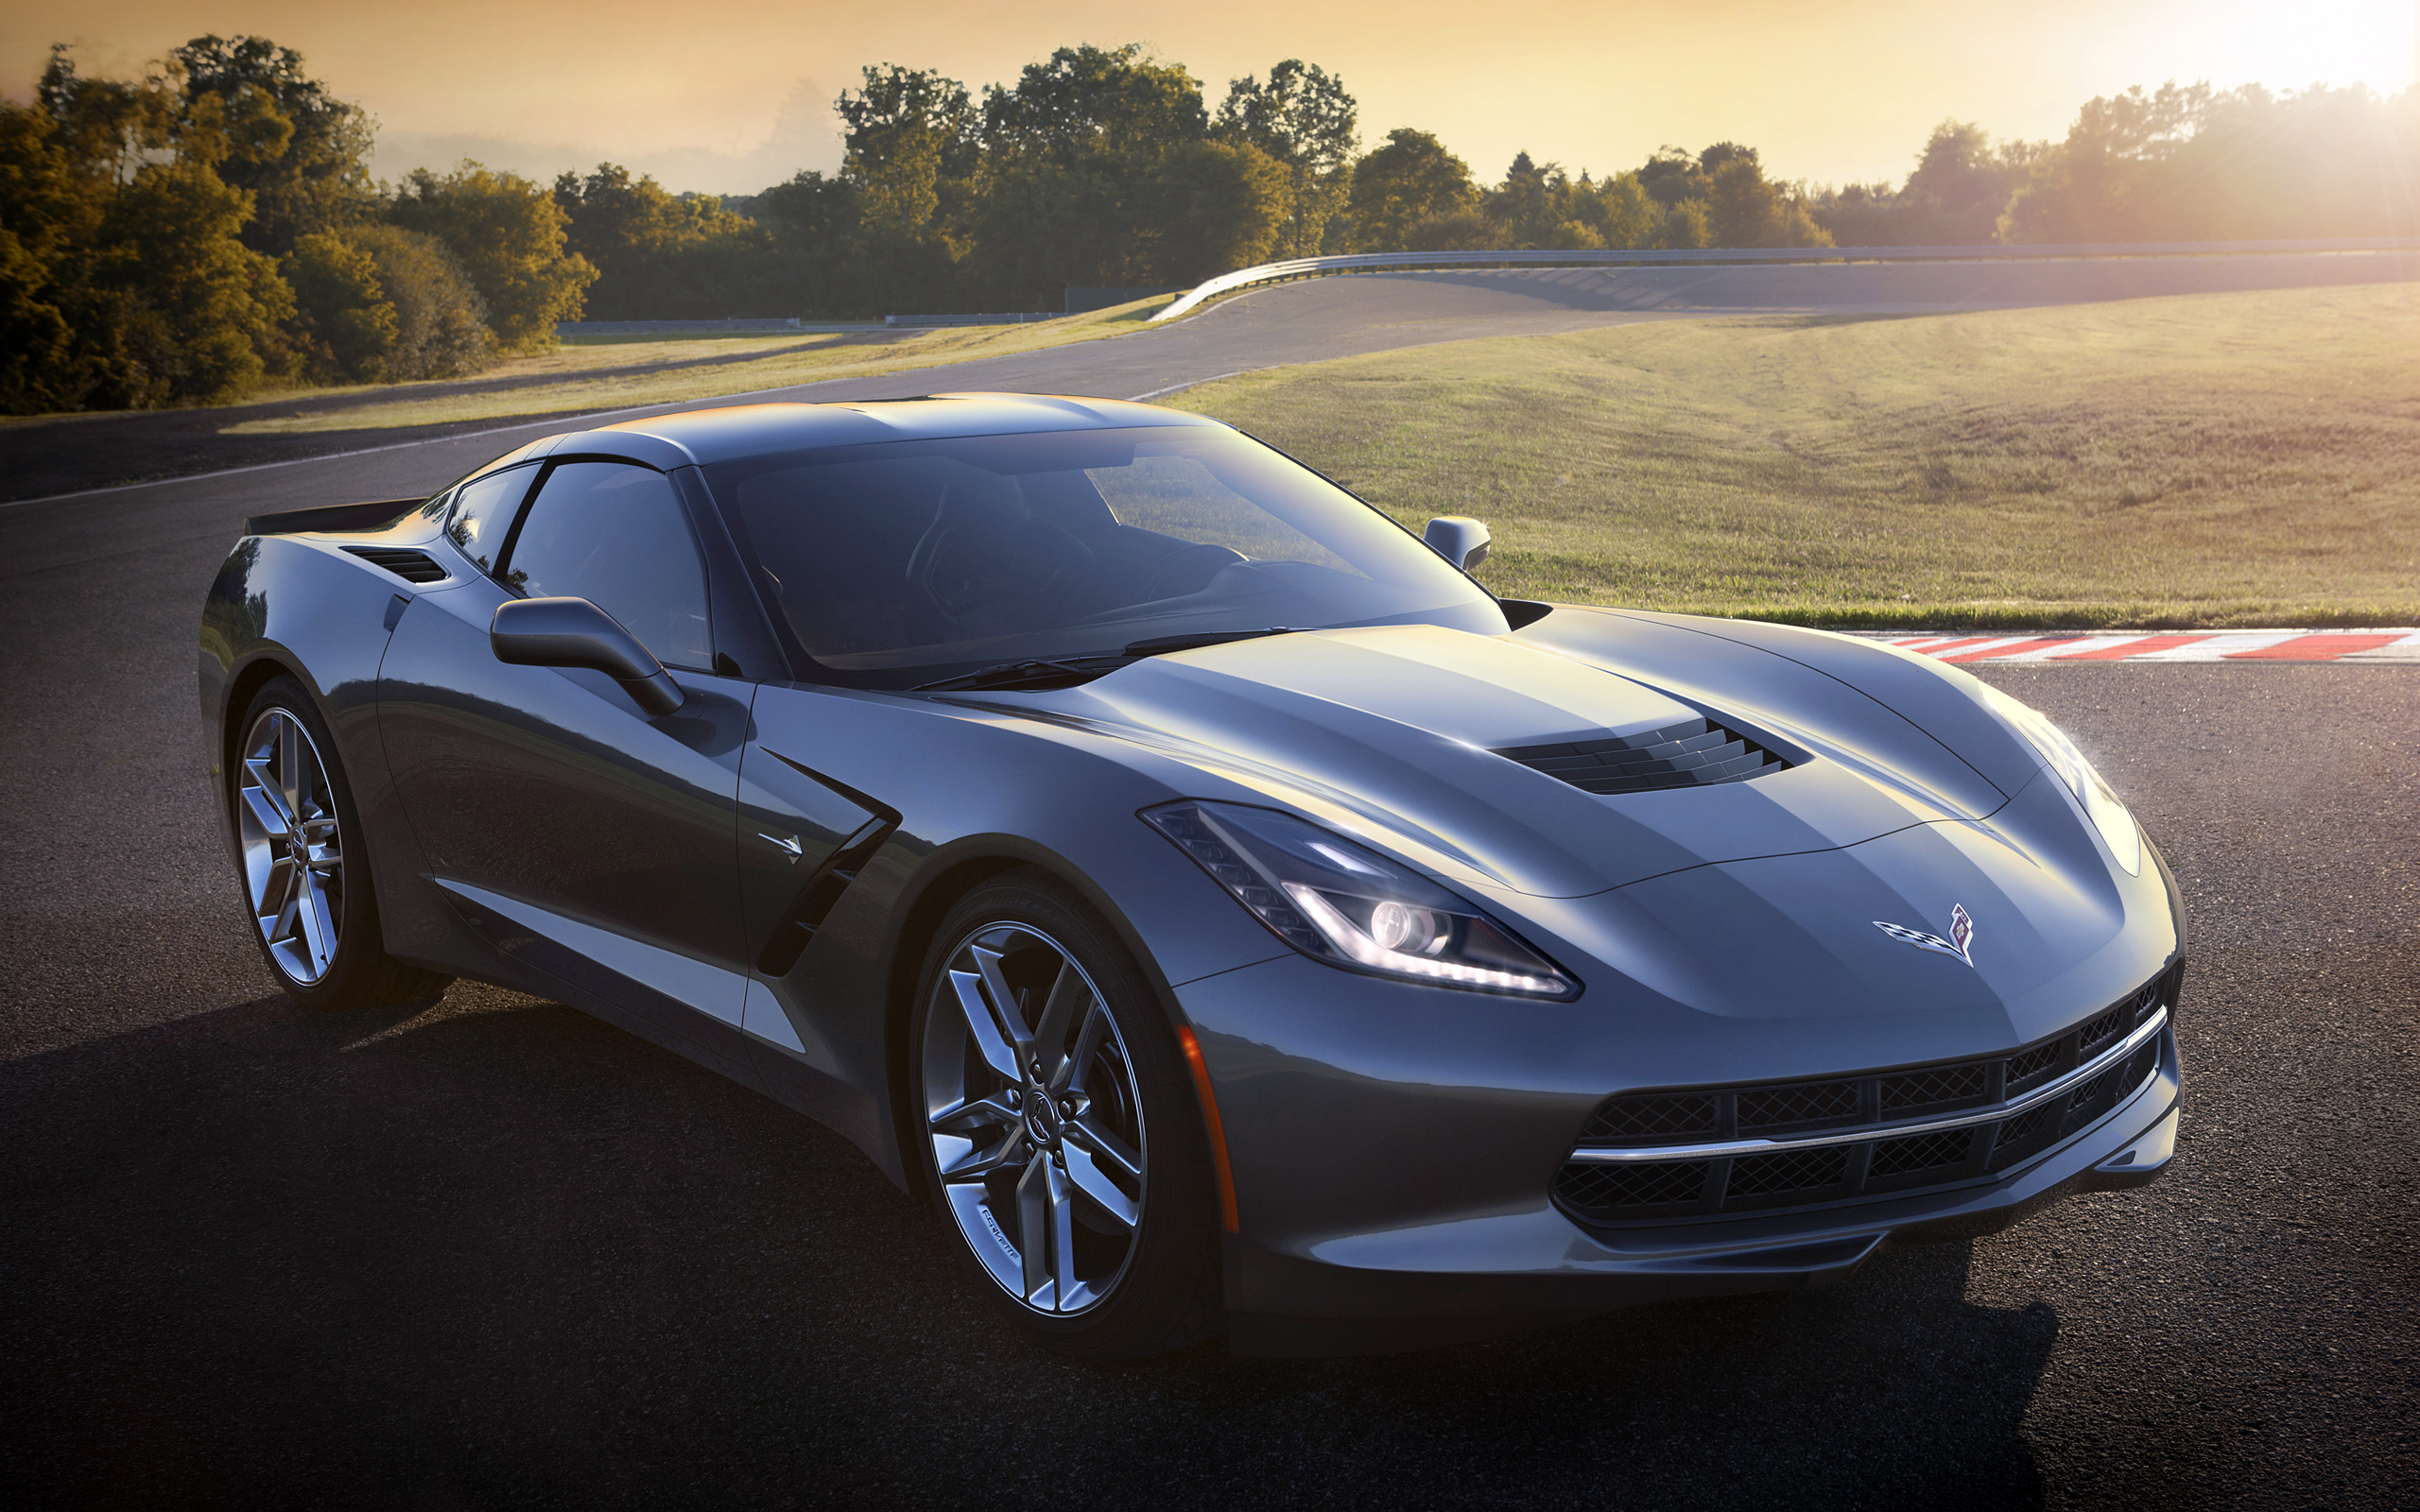 Corvette Stingray Wallpaper